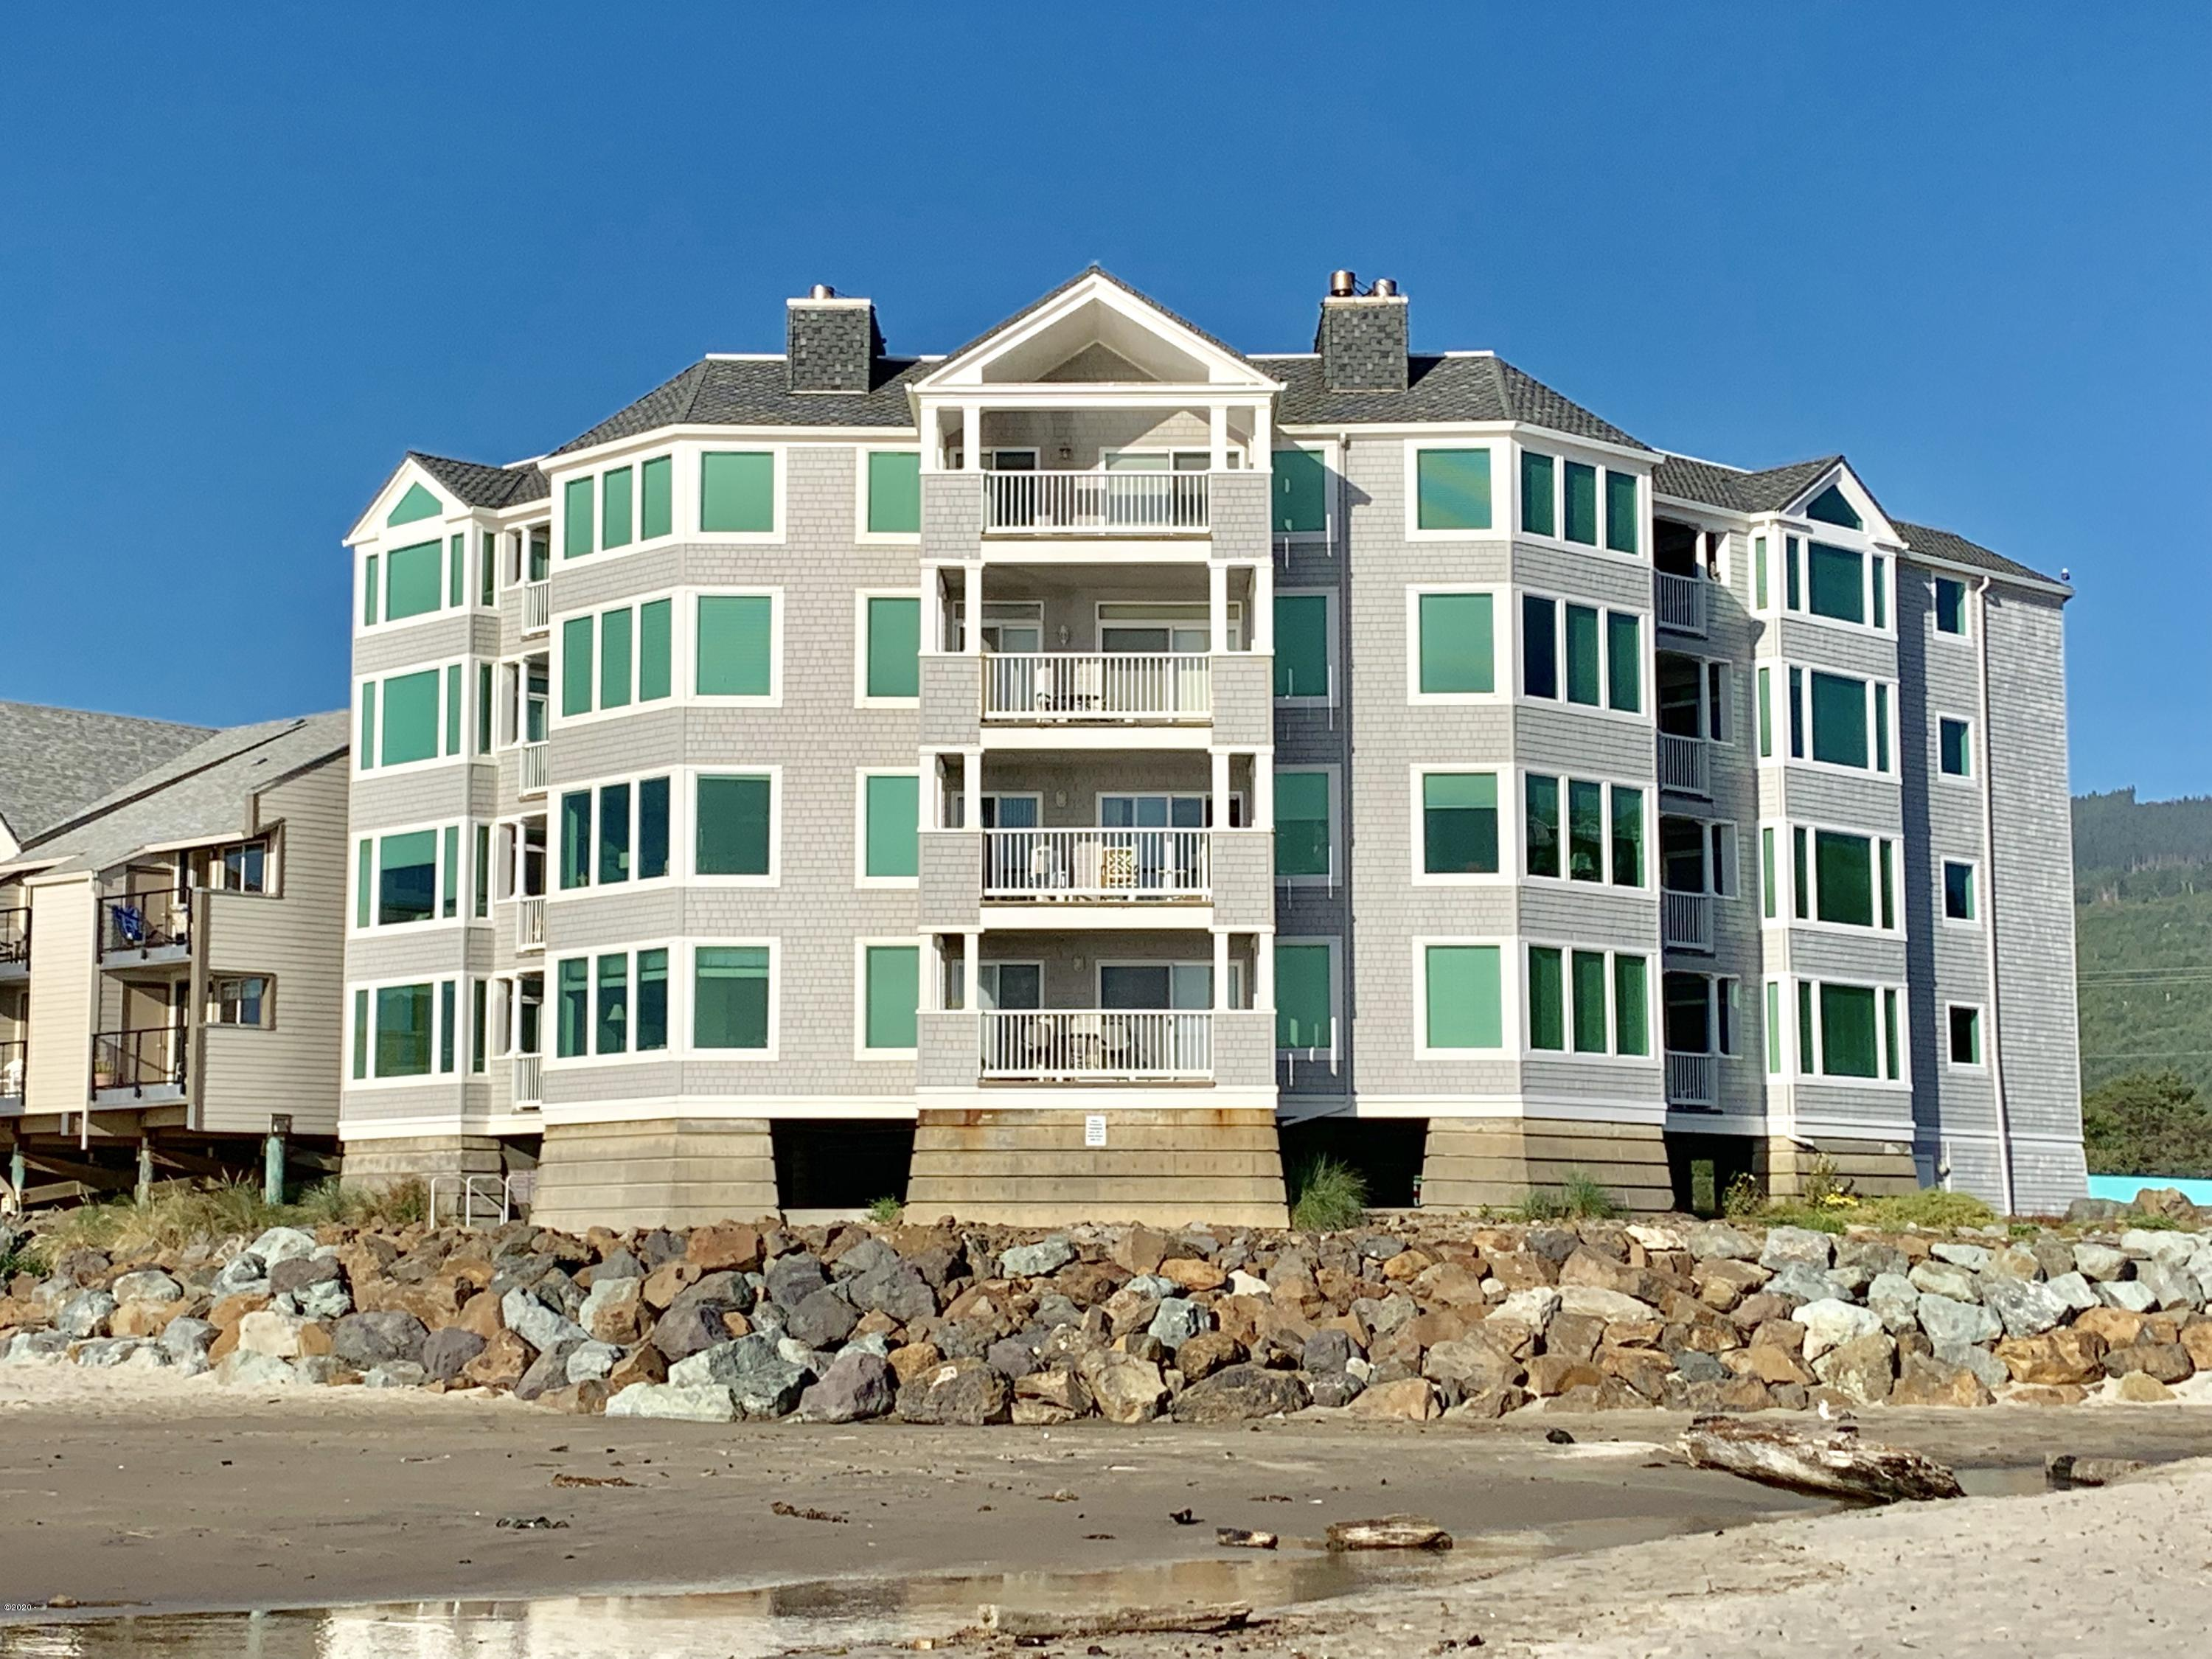 115 N. Miller St., UNIT 203 'WEEK E', Rockaway Beach, OR 97136 - Beach Side of the Condo's